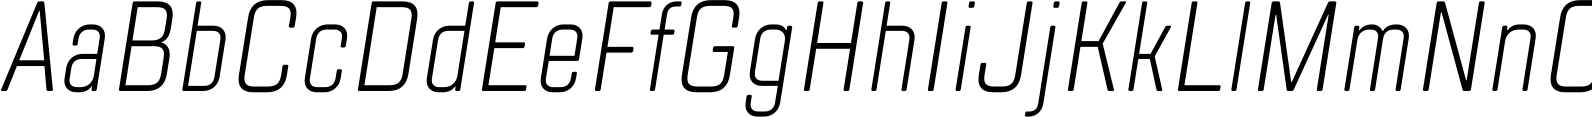 TT Lakes Compressed Light Italic Font